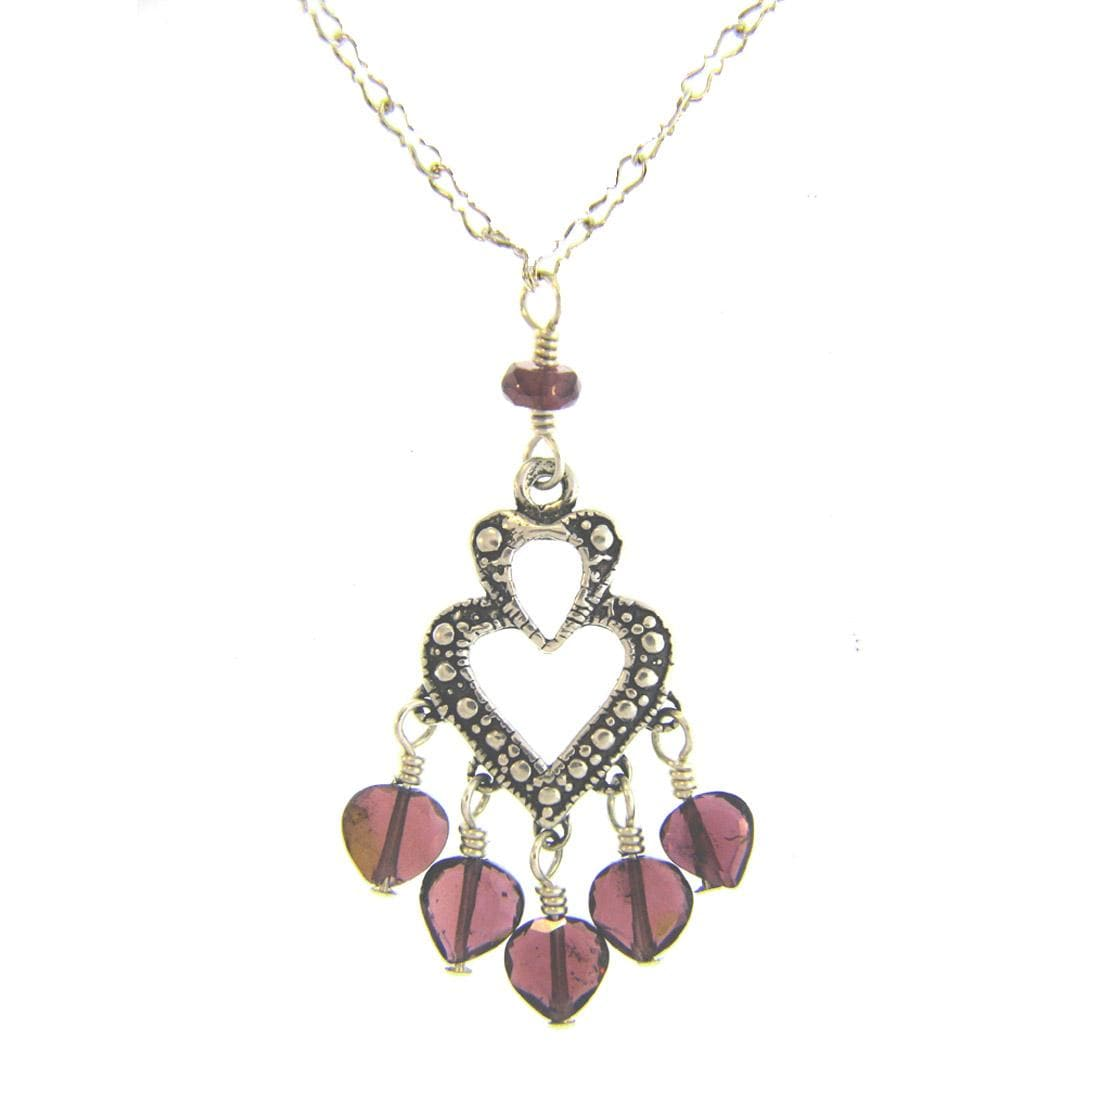 Misha Curtis Sterling Silver and Garnet Heart Pendant Necklace